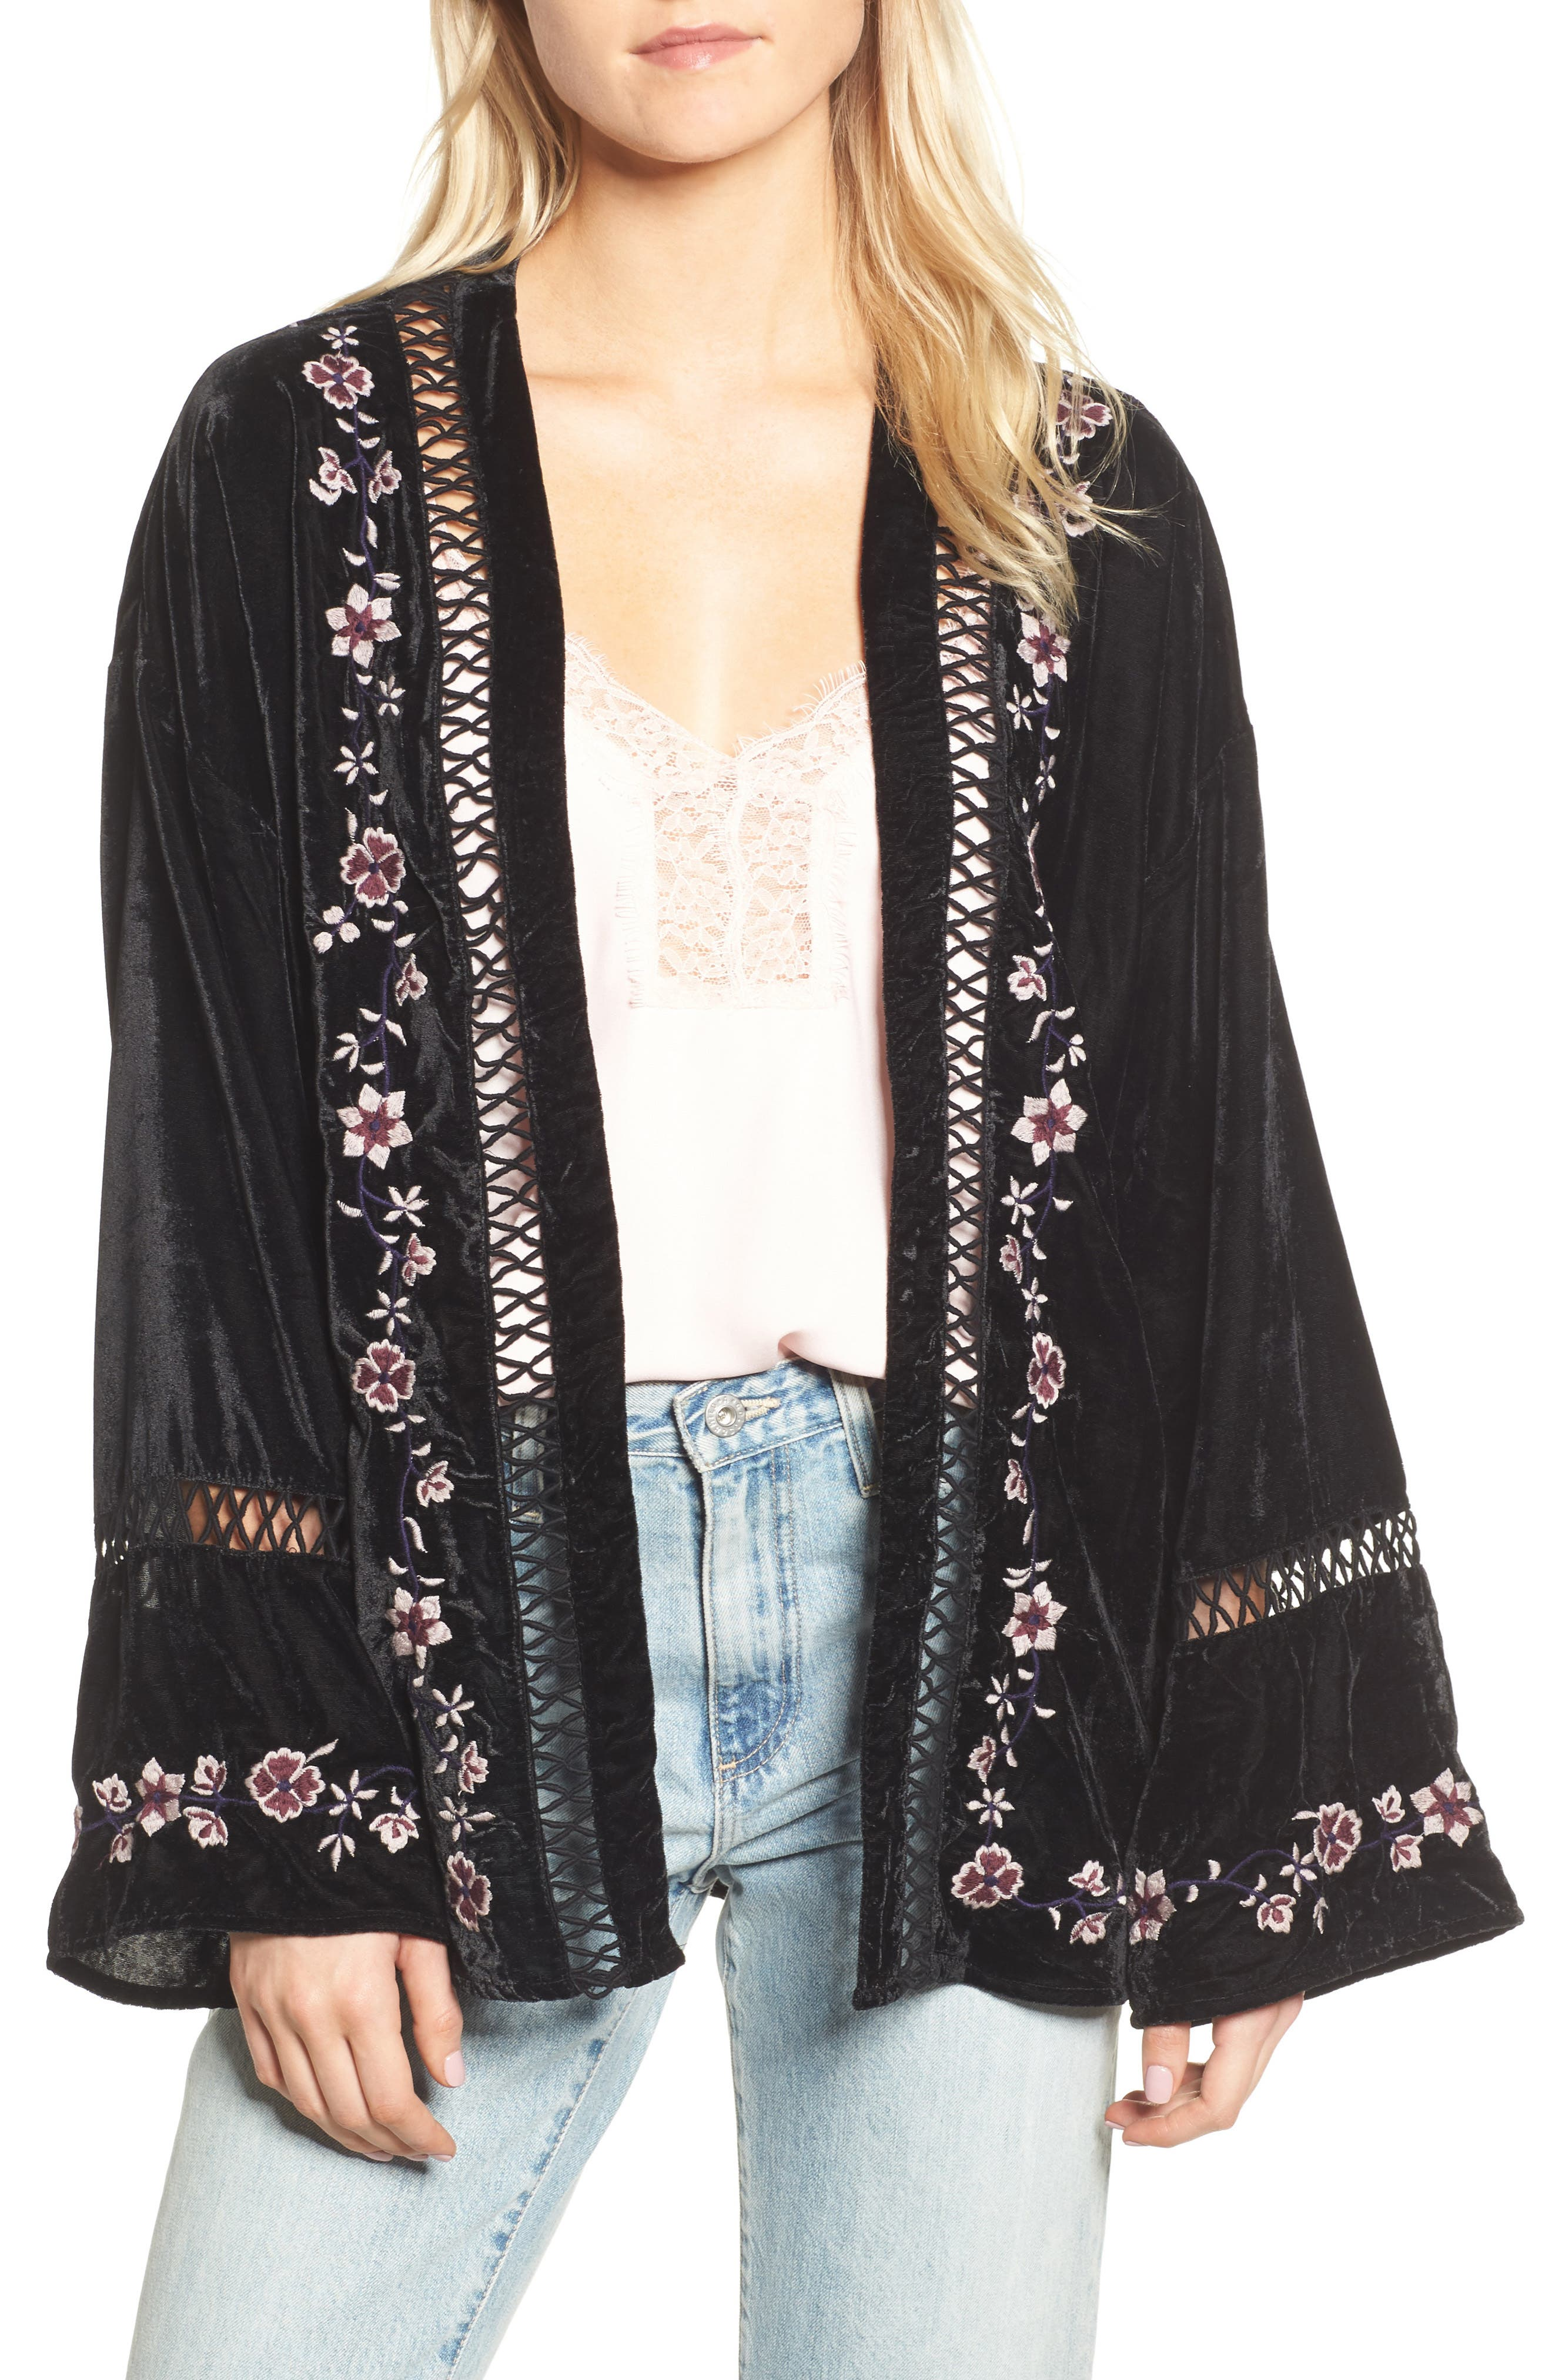 Alternate Image 1 Selected - Willow & Clay Embroidered Velvet Jacket